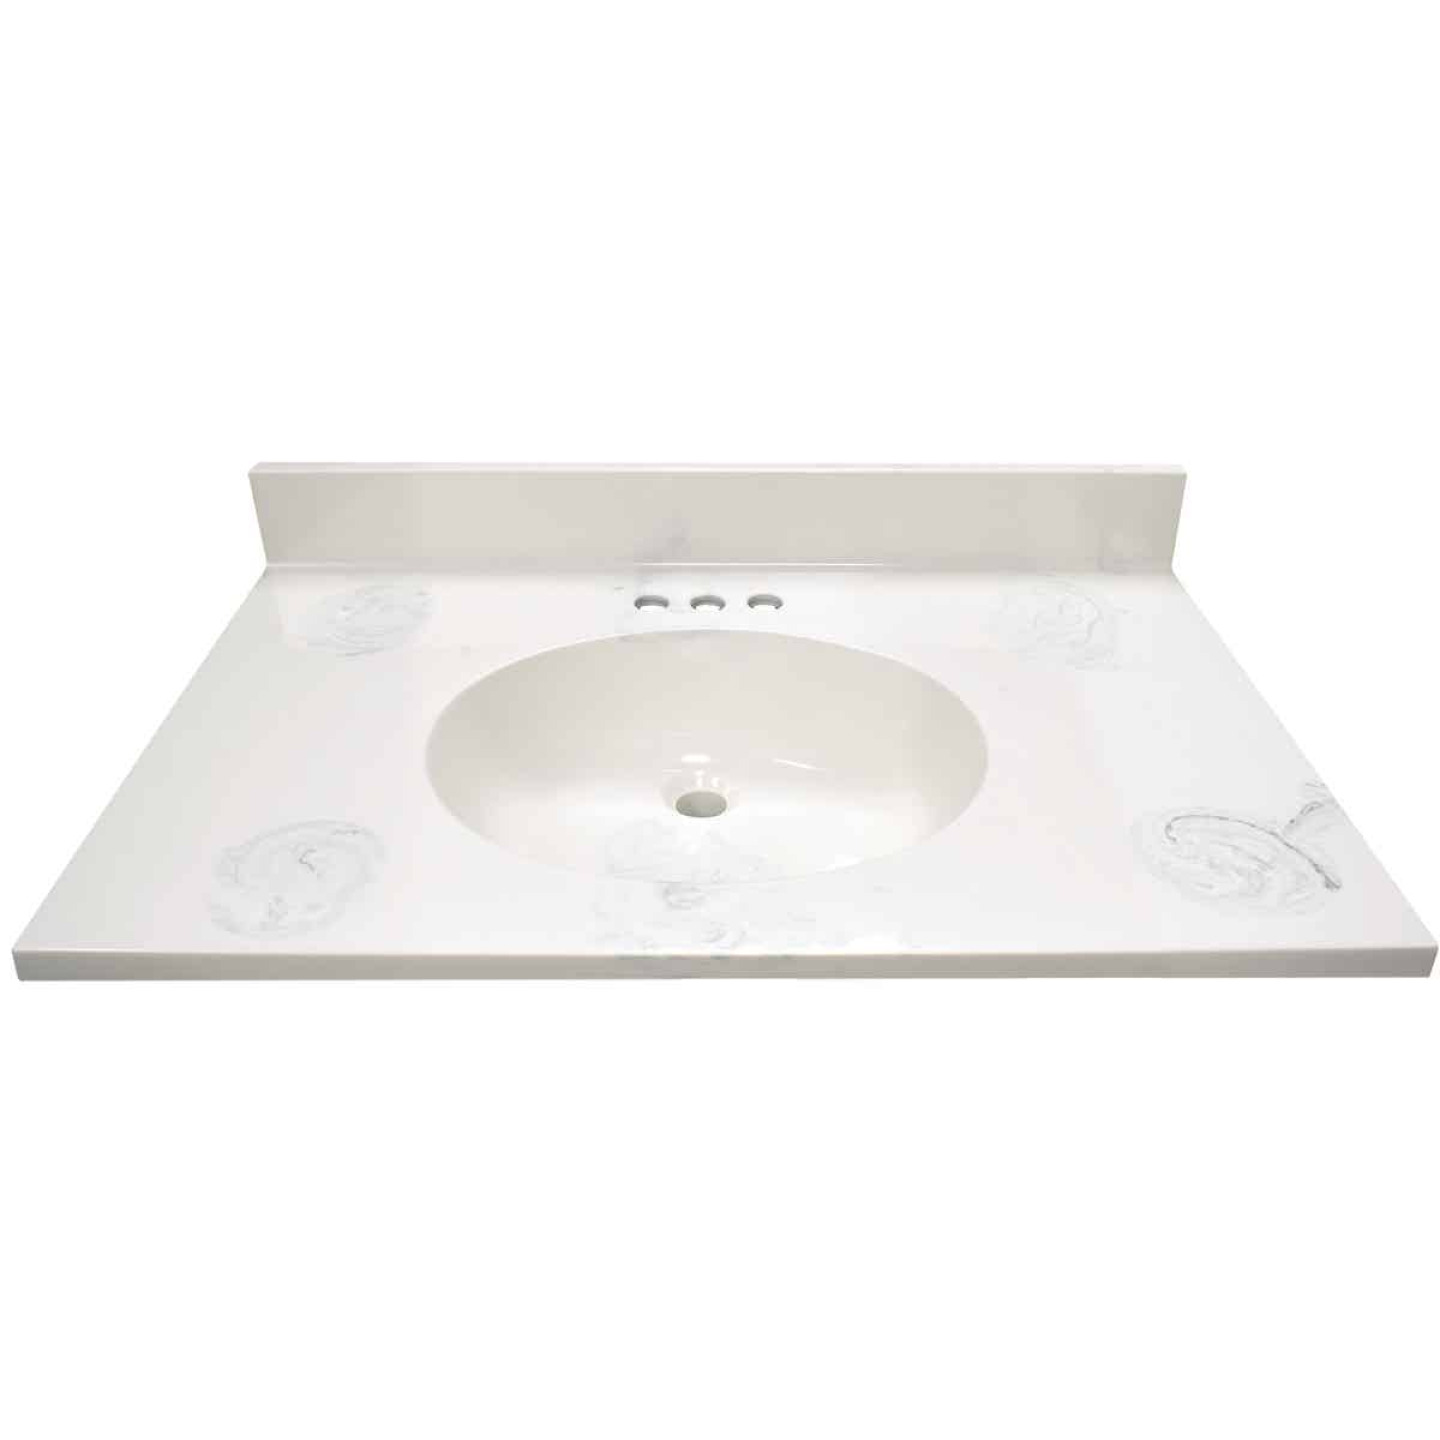 Modular Vanity Tops 31 In. W x 22 In. D Marbled Dove Gray Cultured Marble Flat Edge Vanity Top with Oval Bowl Image 2